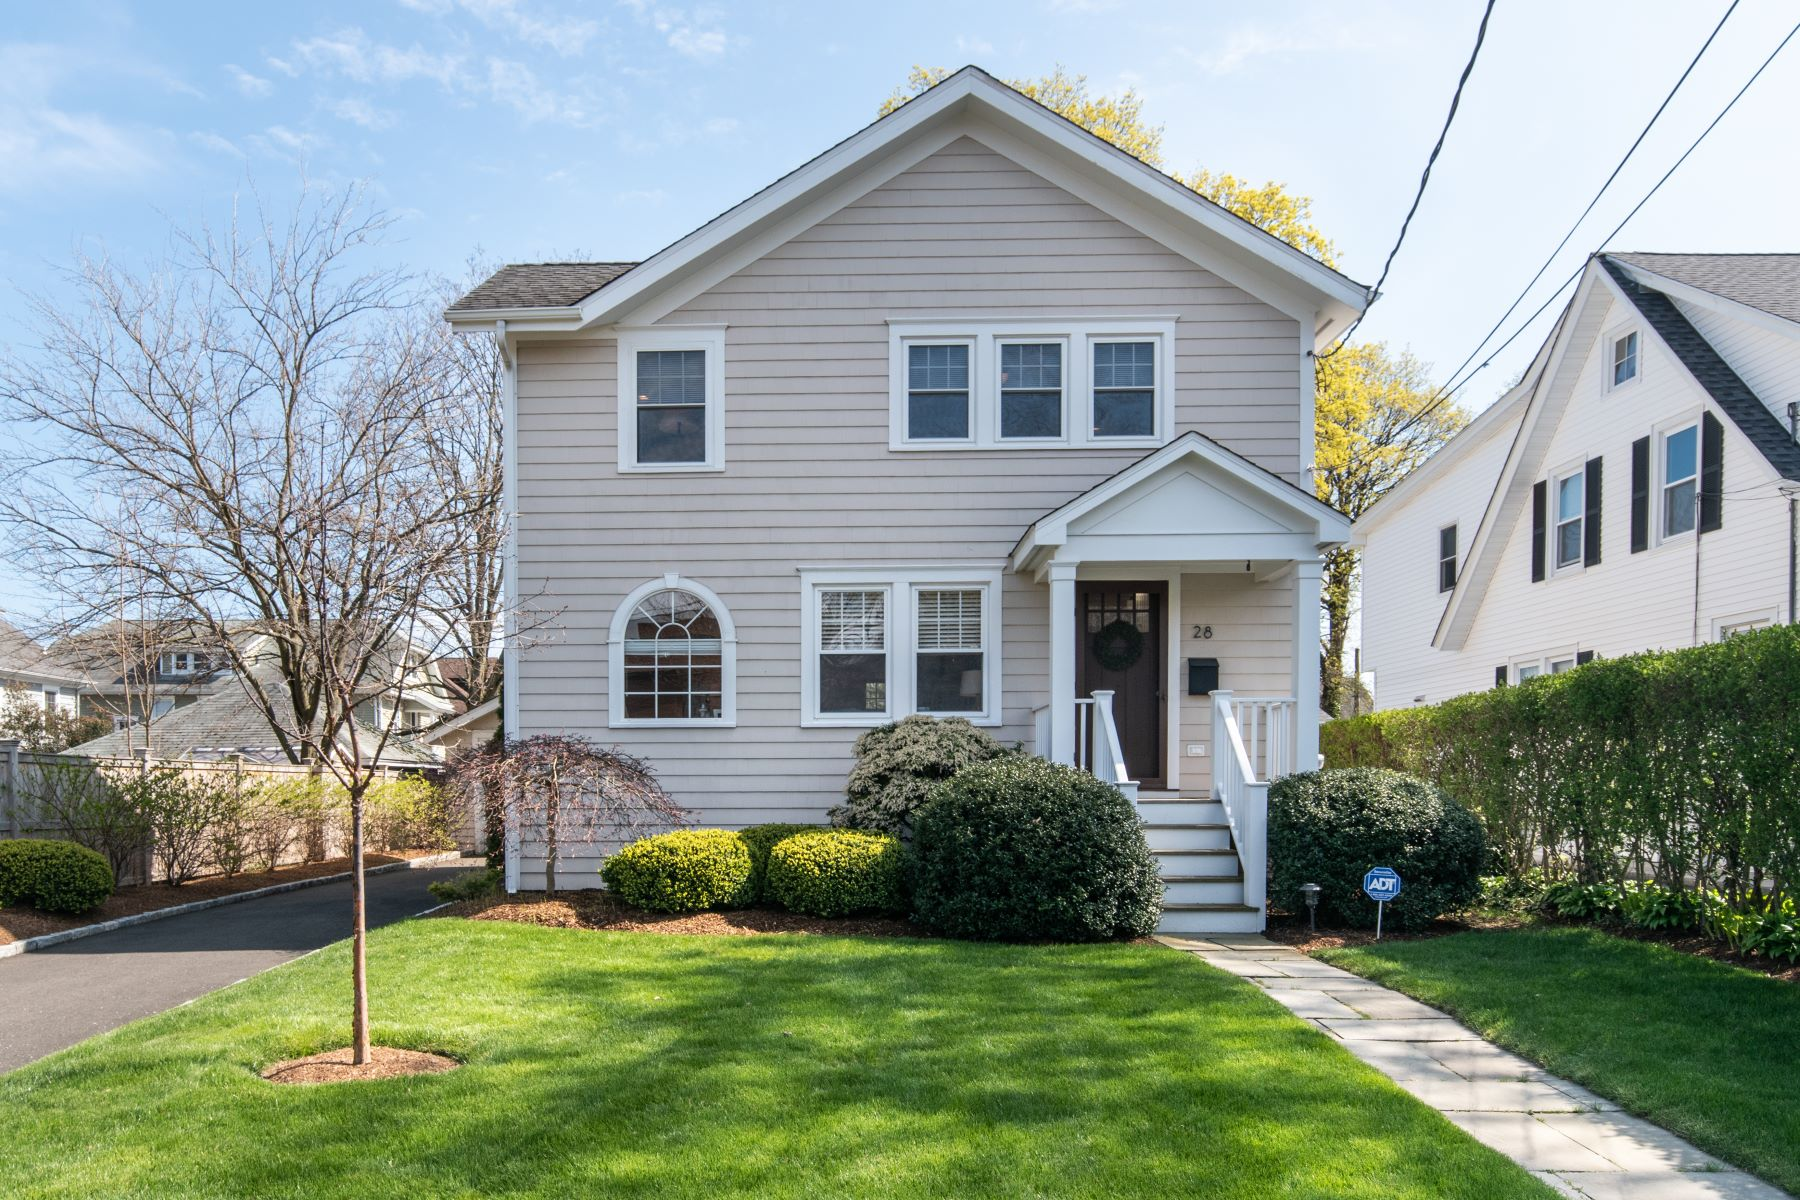 Single Family Homes for Sale at Fabulous Colonial Beach House 28 3rd Street Norwalk, Connecticut 06855 United States